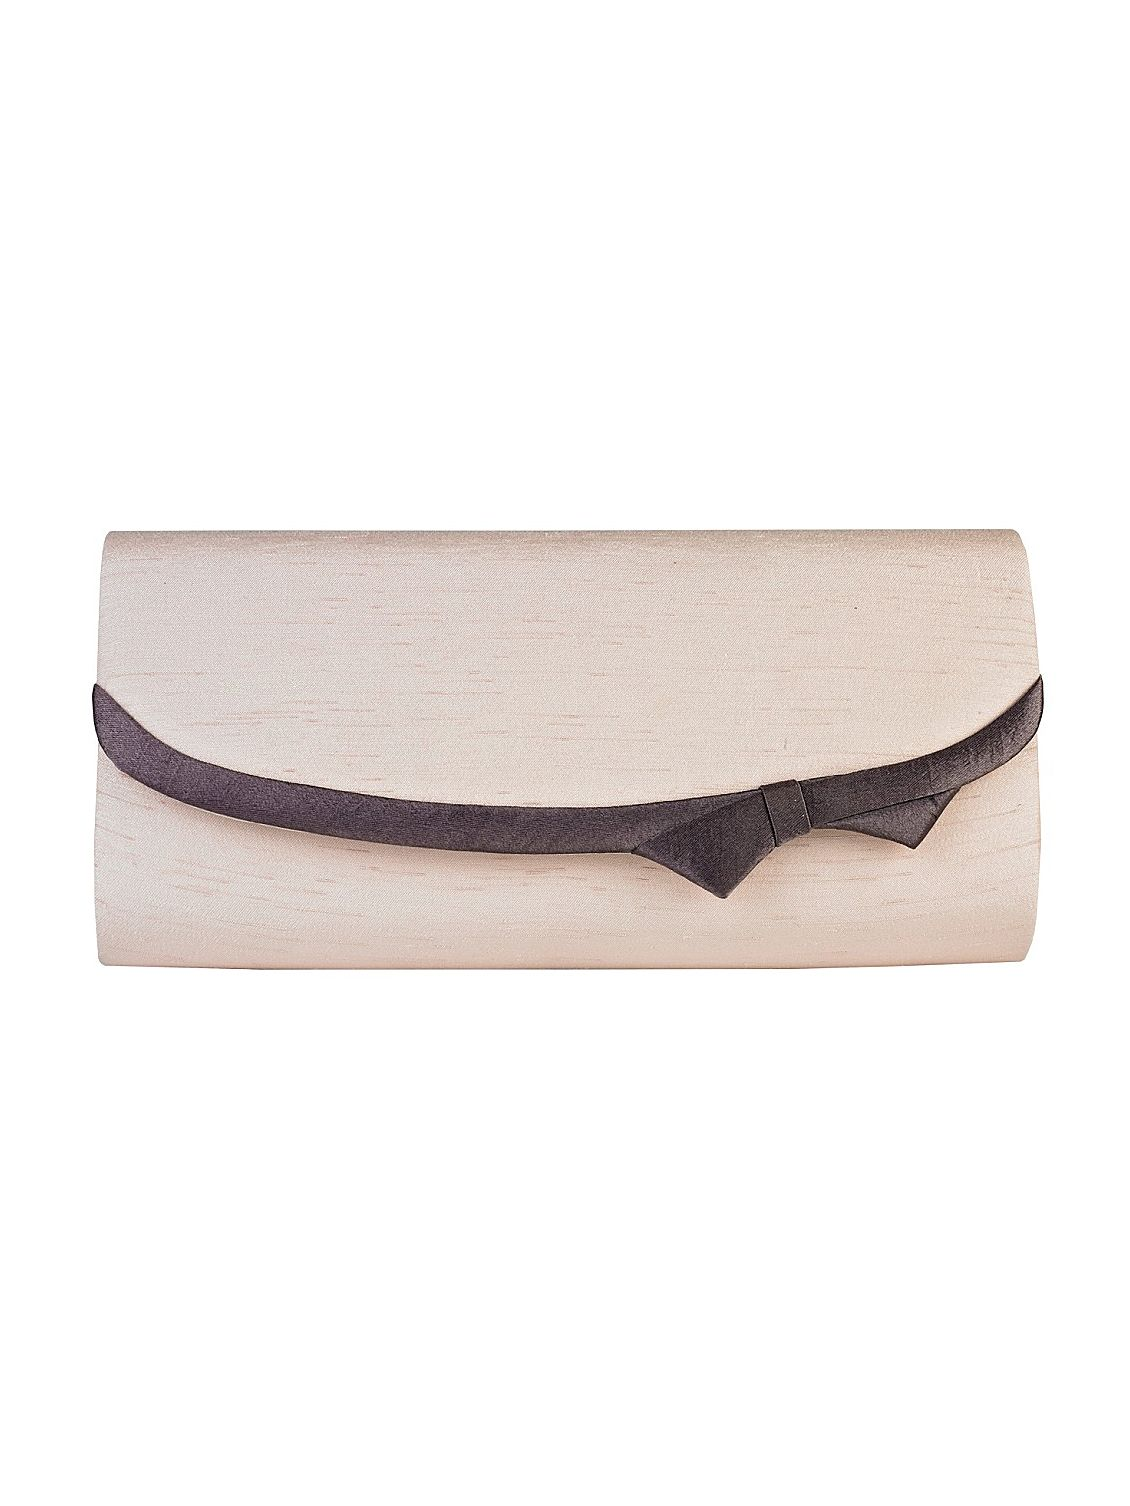 Jacques Vert Cashew shantung clutch bag Brown product image